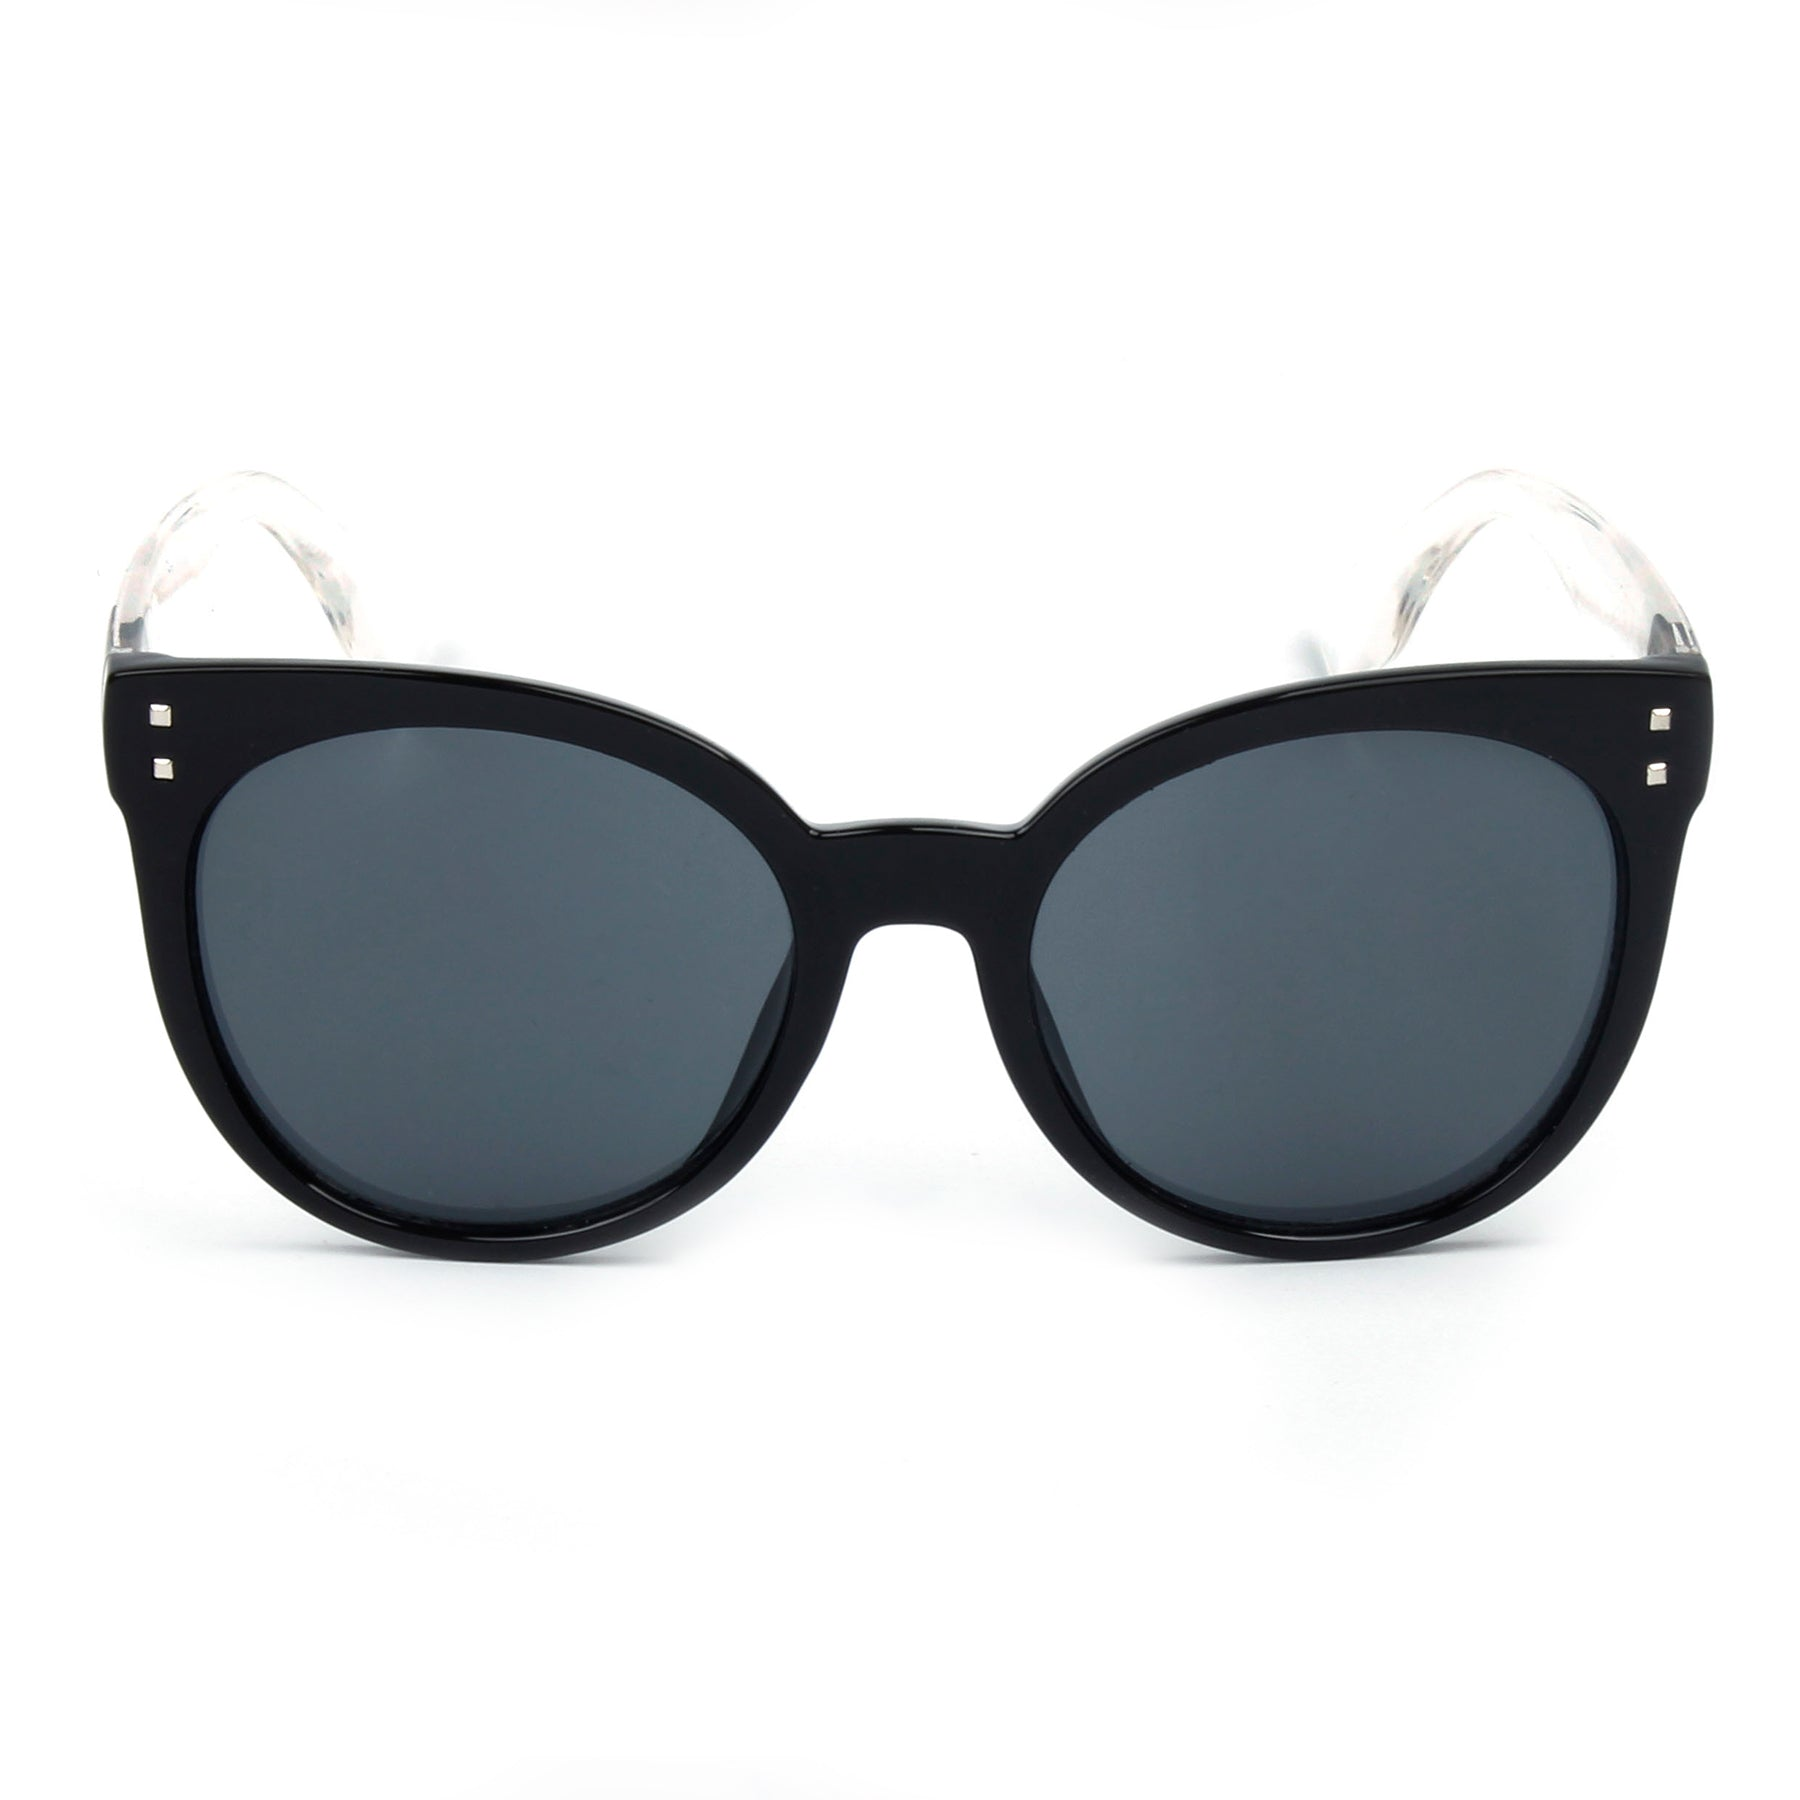 TAVUA SUNGLASS IN BLACK